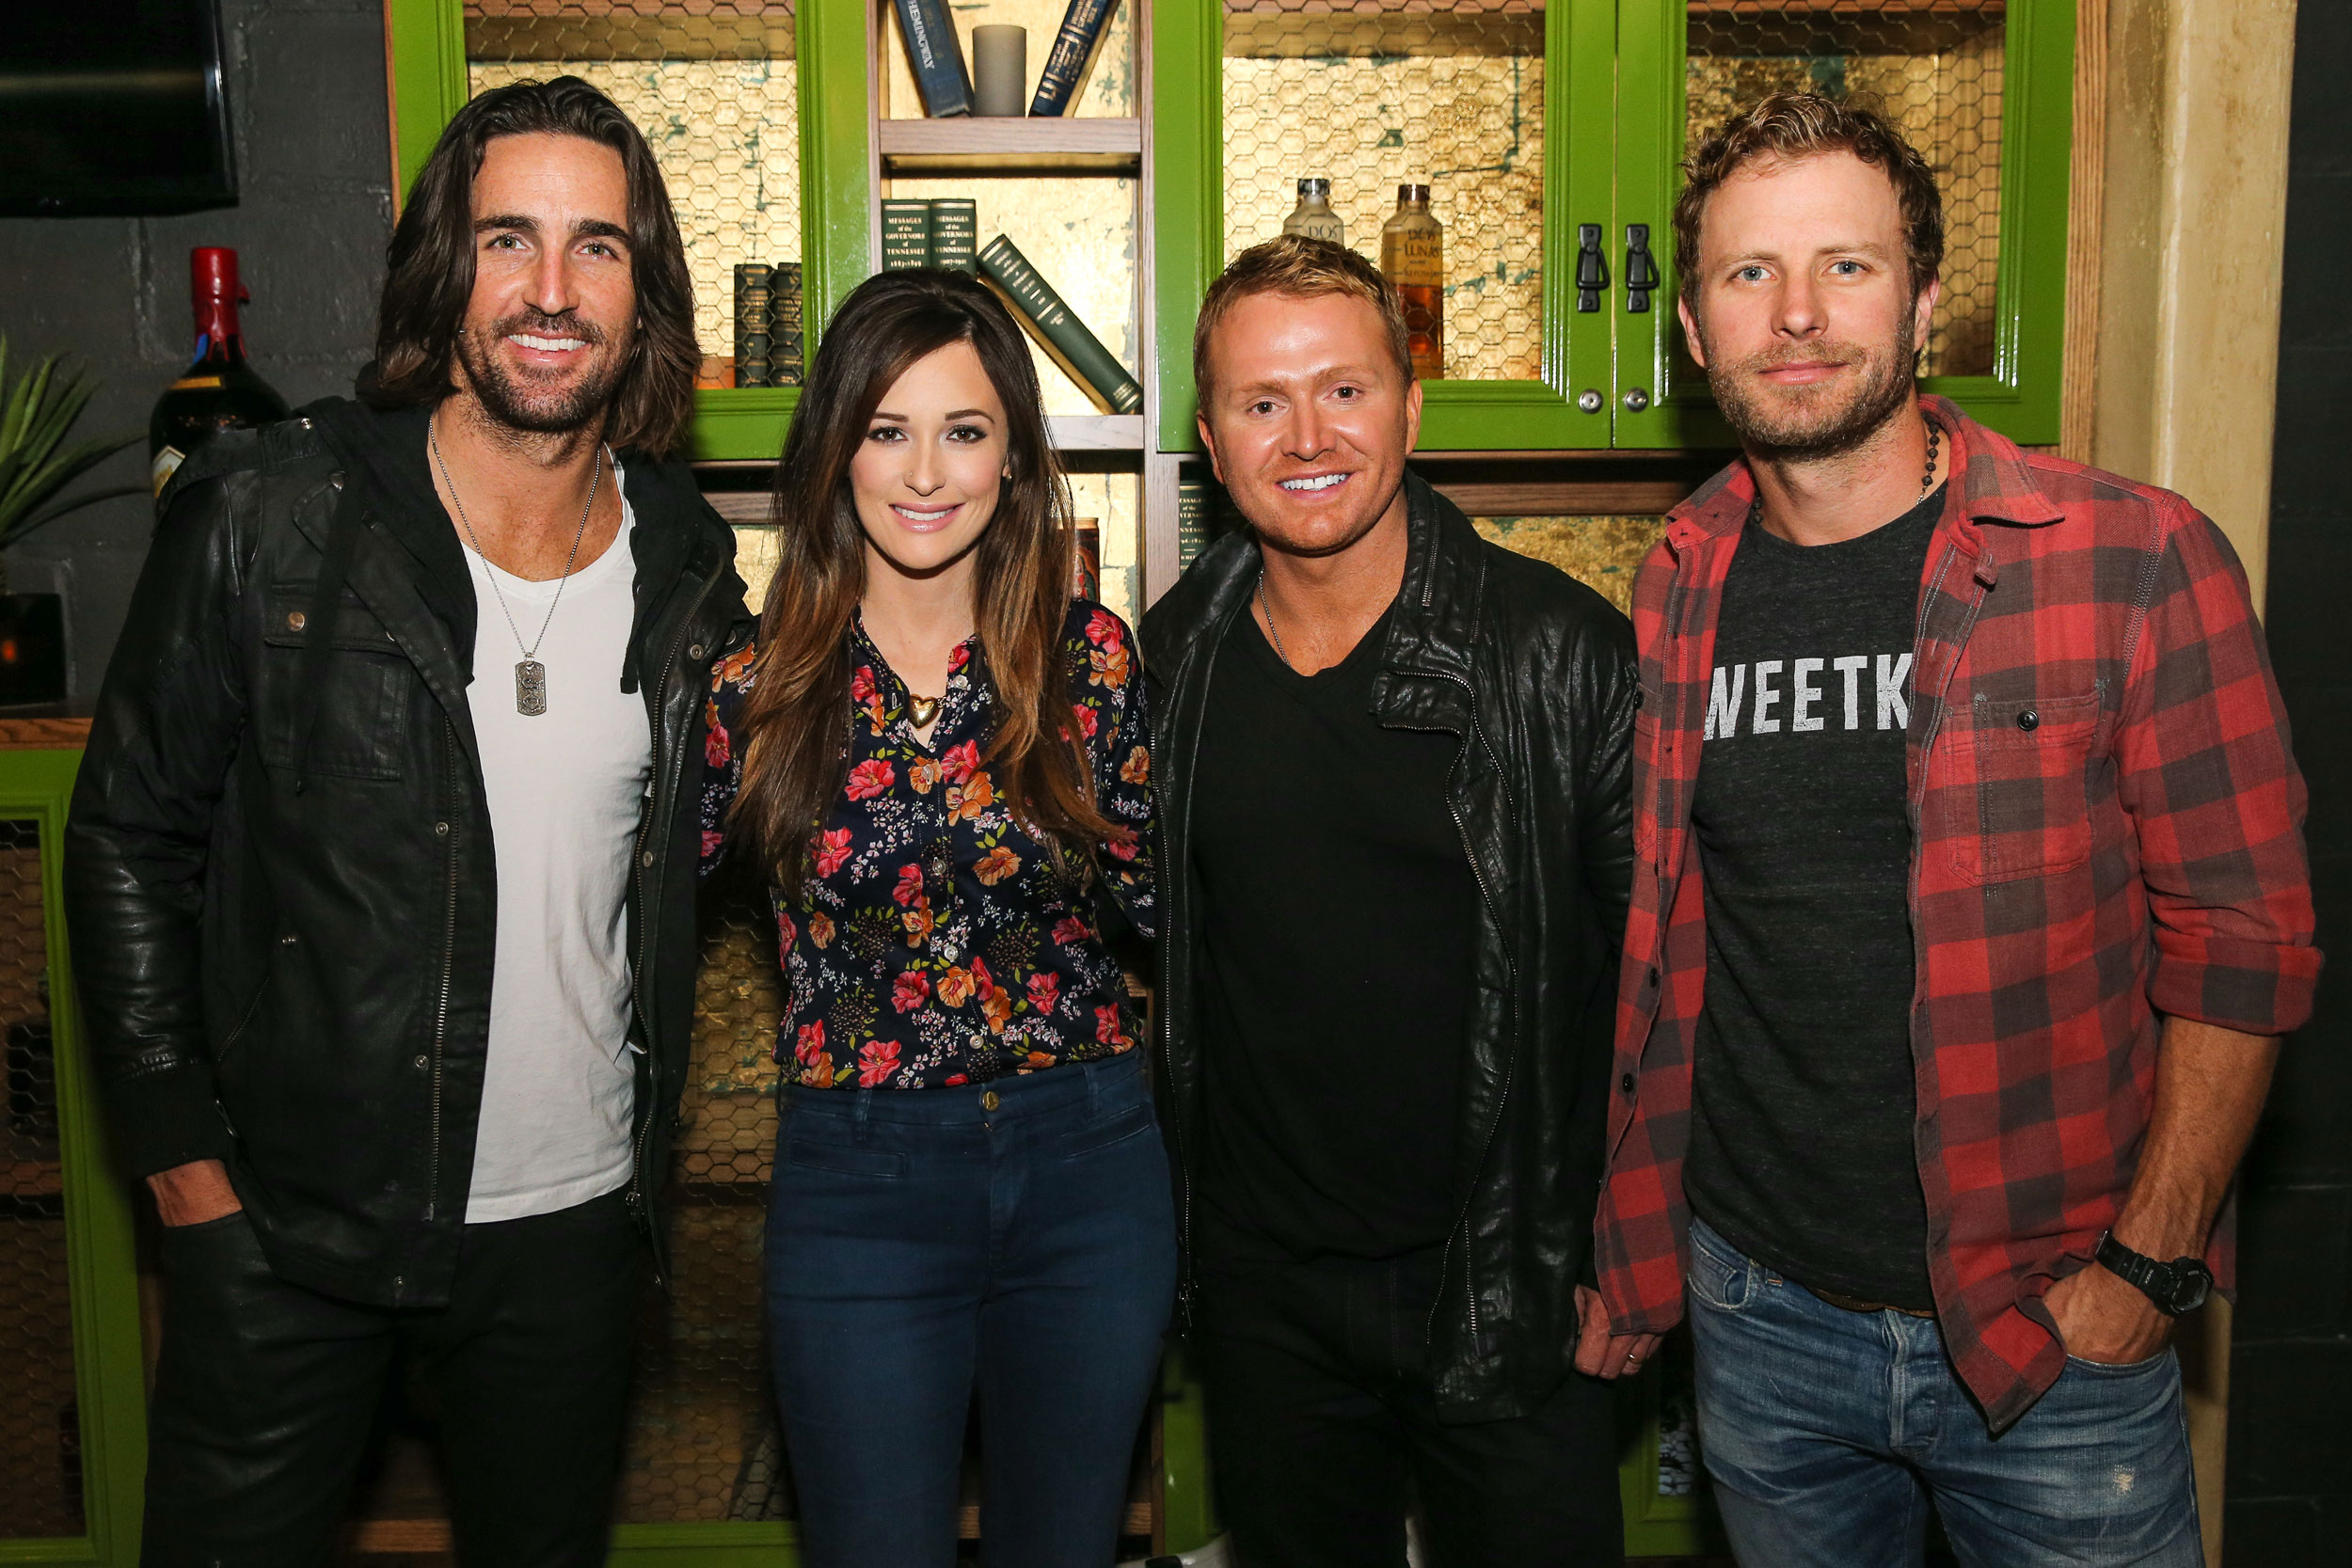 Jake Owen•Kacey Musgraves•Shane McAnally•Dierks Bentley